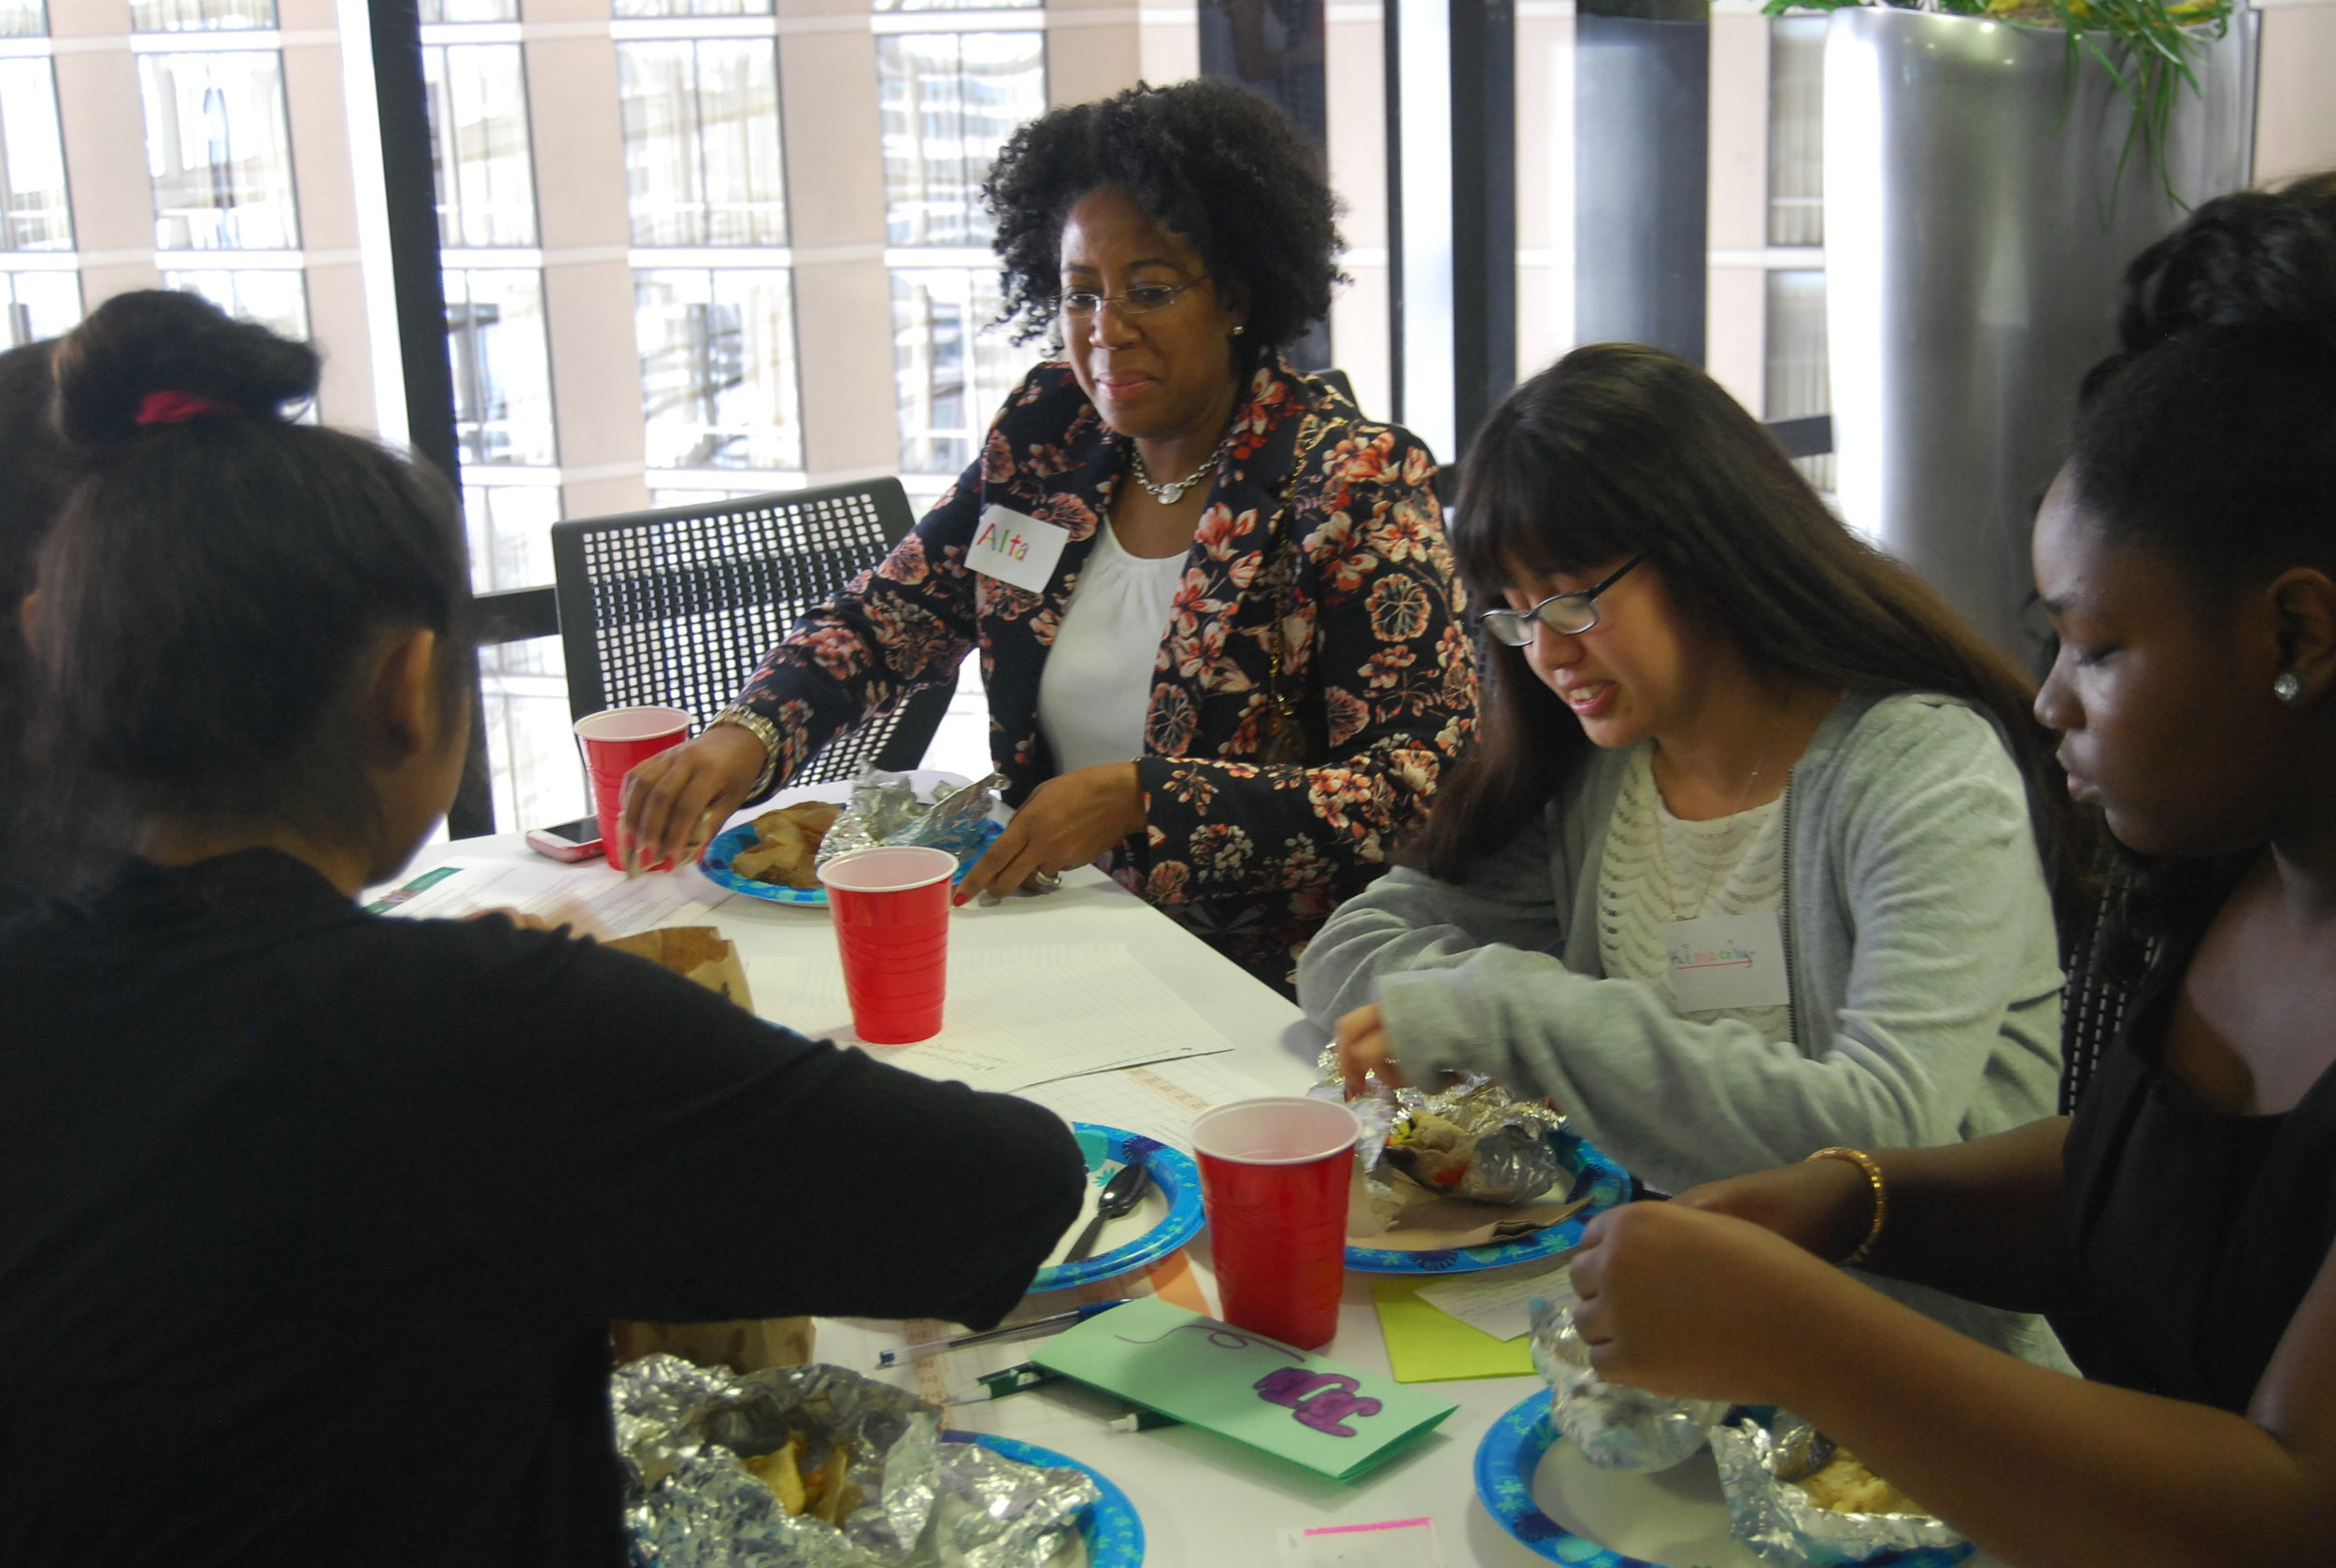 After working hard all morning, a pitch team enjoys lunch with pitch judge and  Altatudes  founder Alta Y. Alexander.